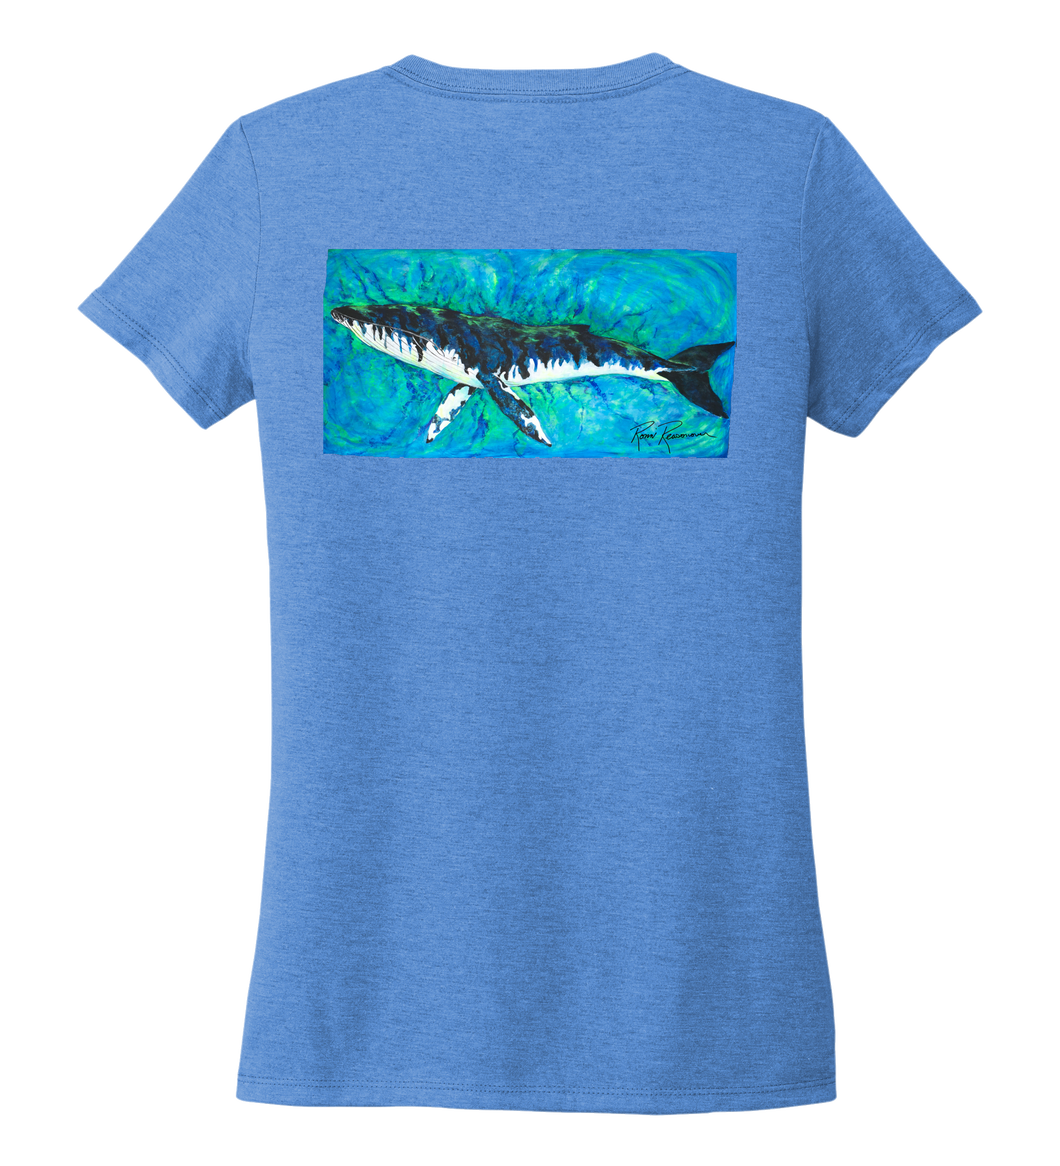 Ronnie Reasonover, The Whale, Women's V-neck T-shirt in Sky Blue